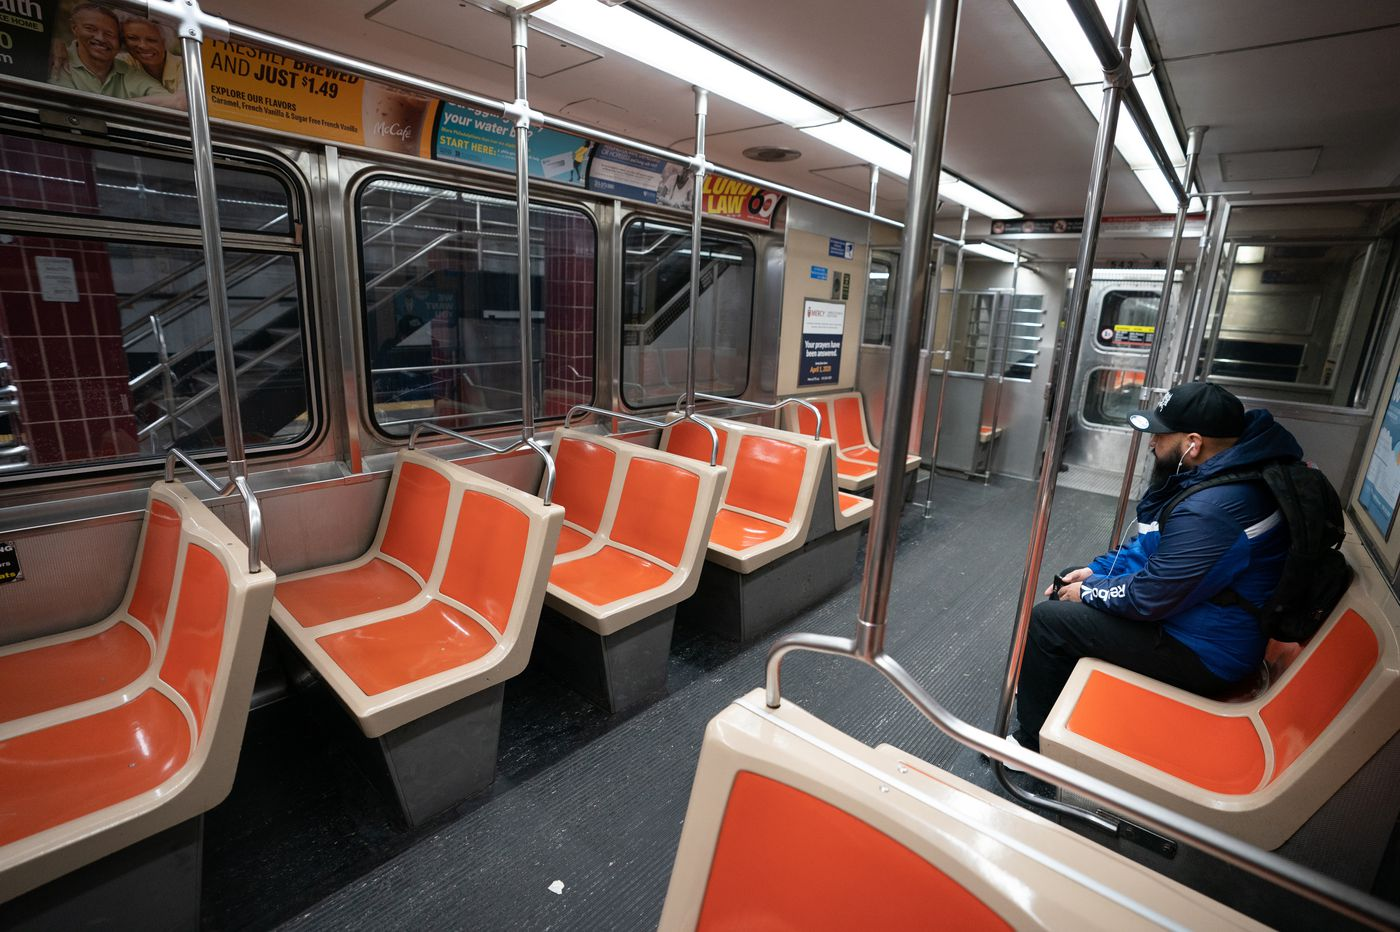 A man died after falling from a SEPTA Broad Street Line train